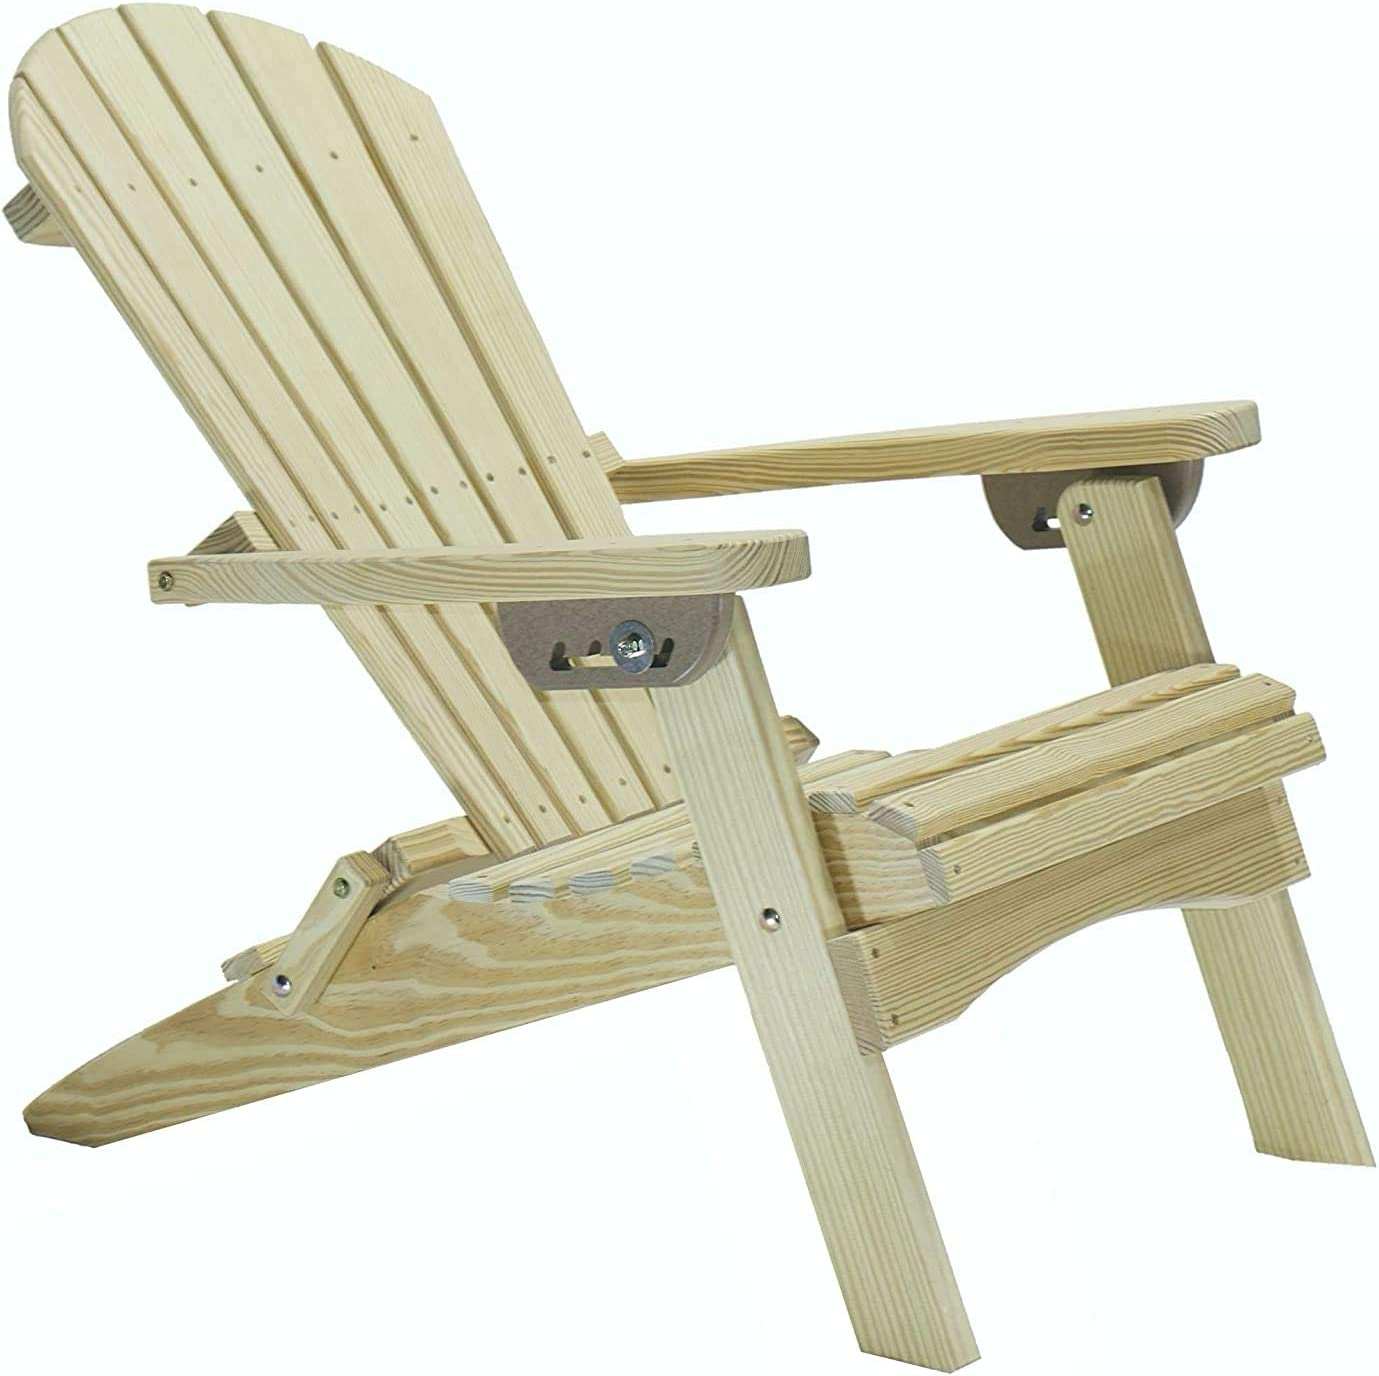 GAZEBO JOE'S Reclining Lounge Wood Folding Adirondack Chair - Made in USA for Patio, Yard, Deck, Garden Furniture